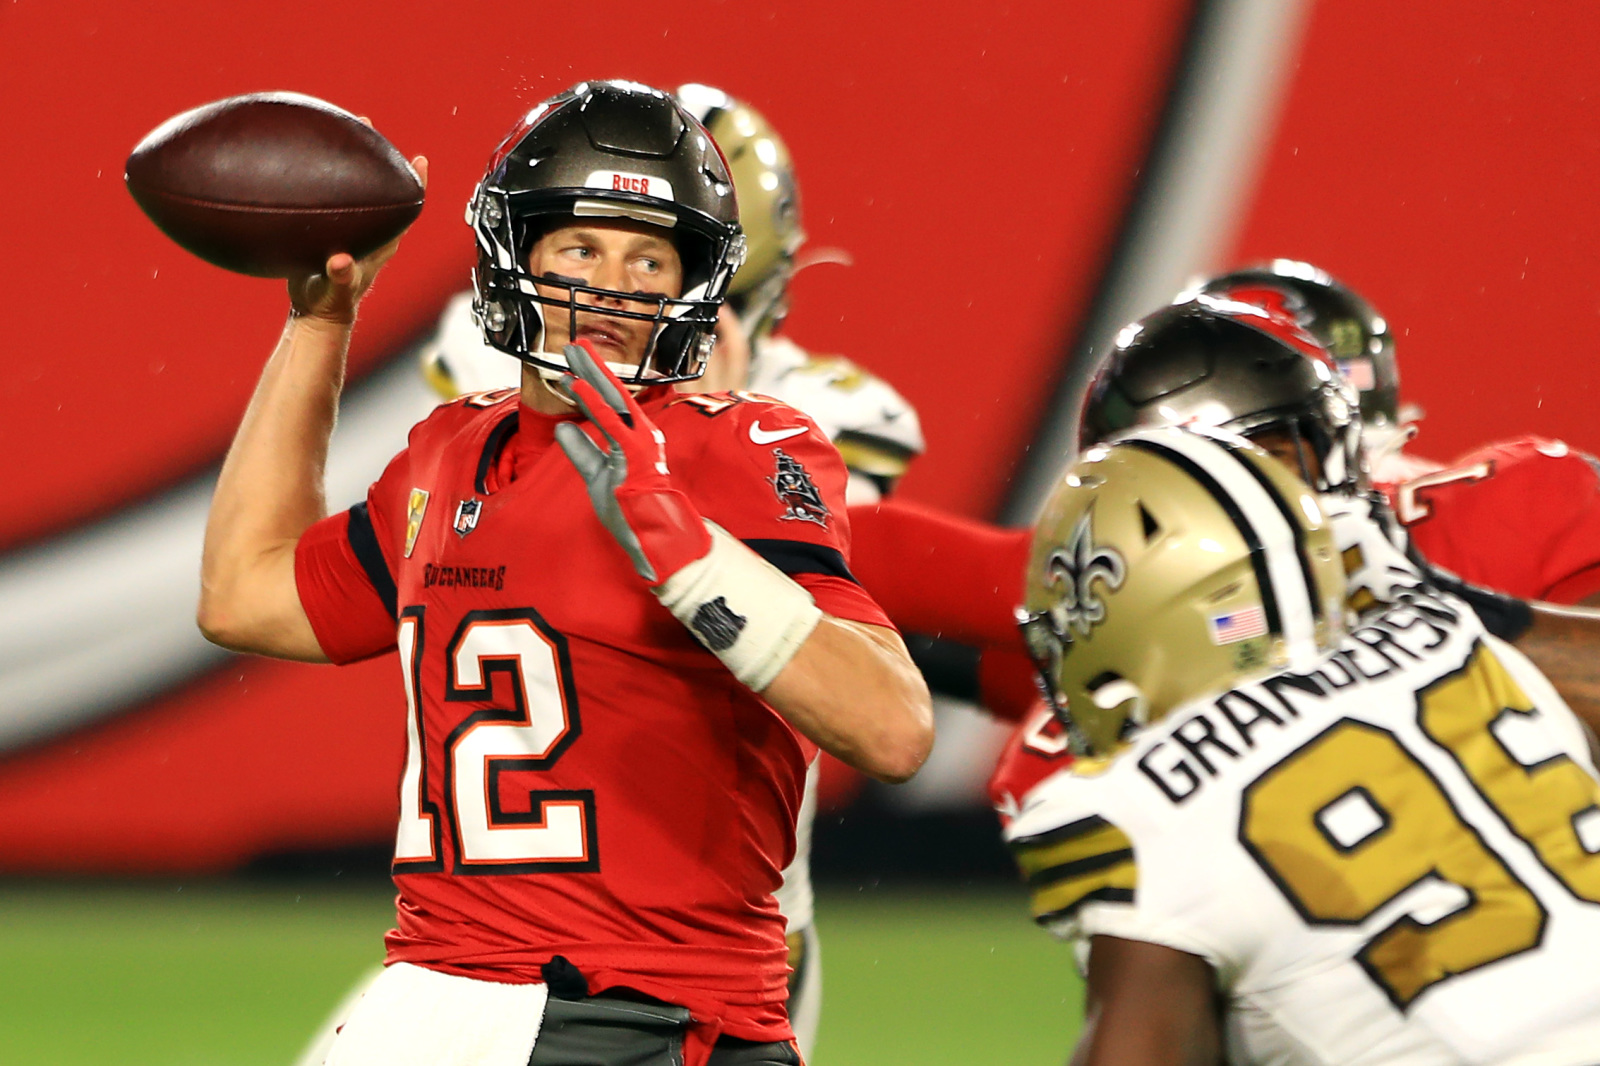 Tampa Bay Buccaneers Harm Nfc South Chances With Brutal Loss